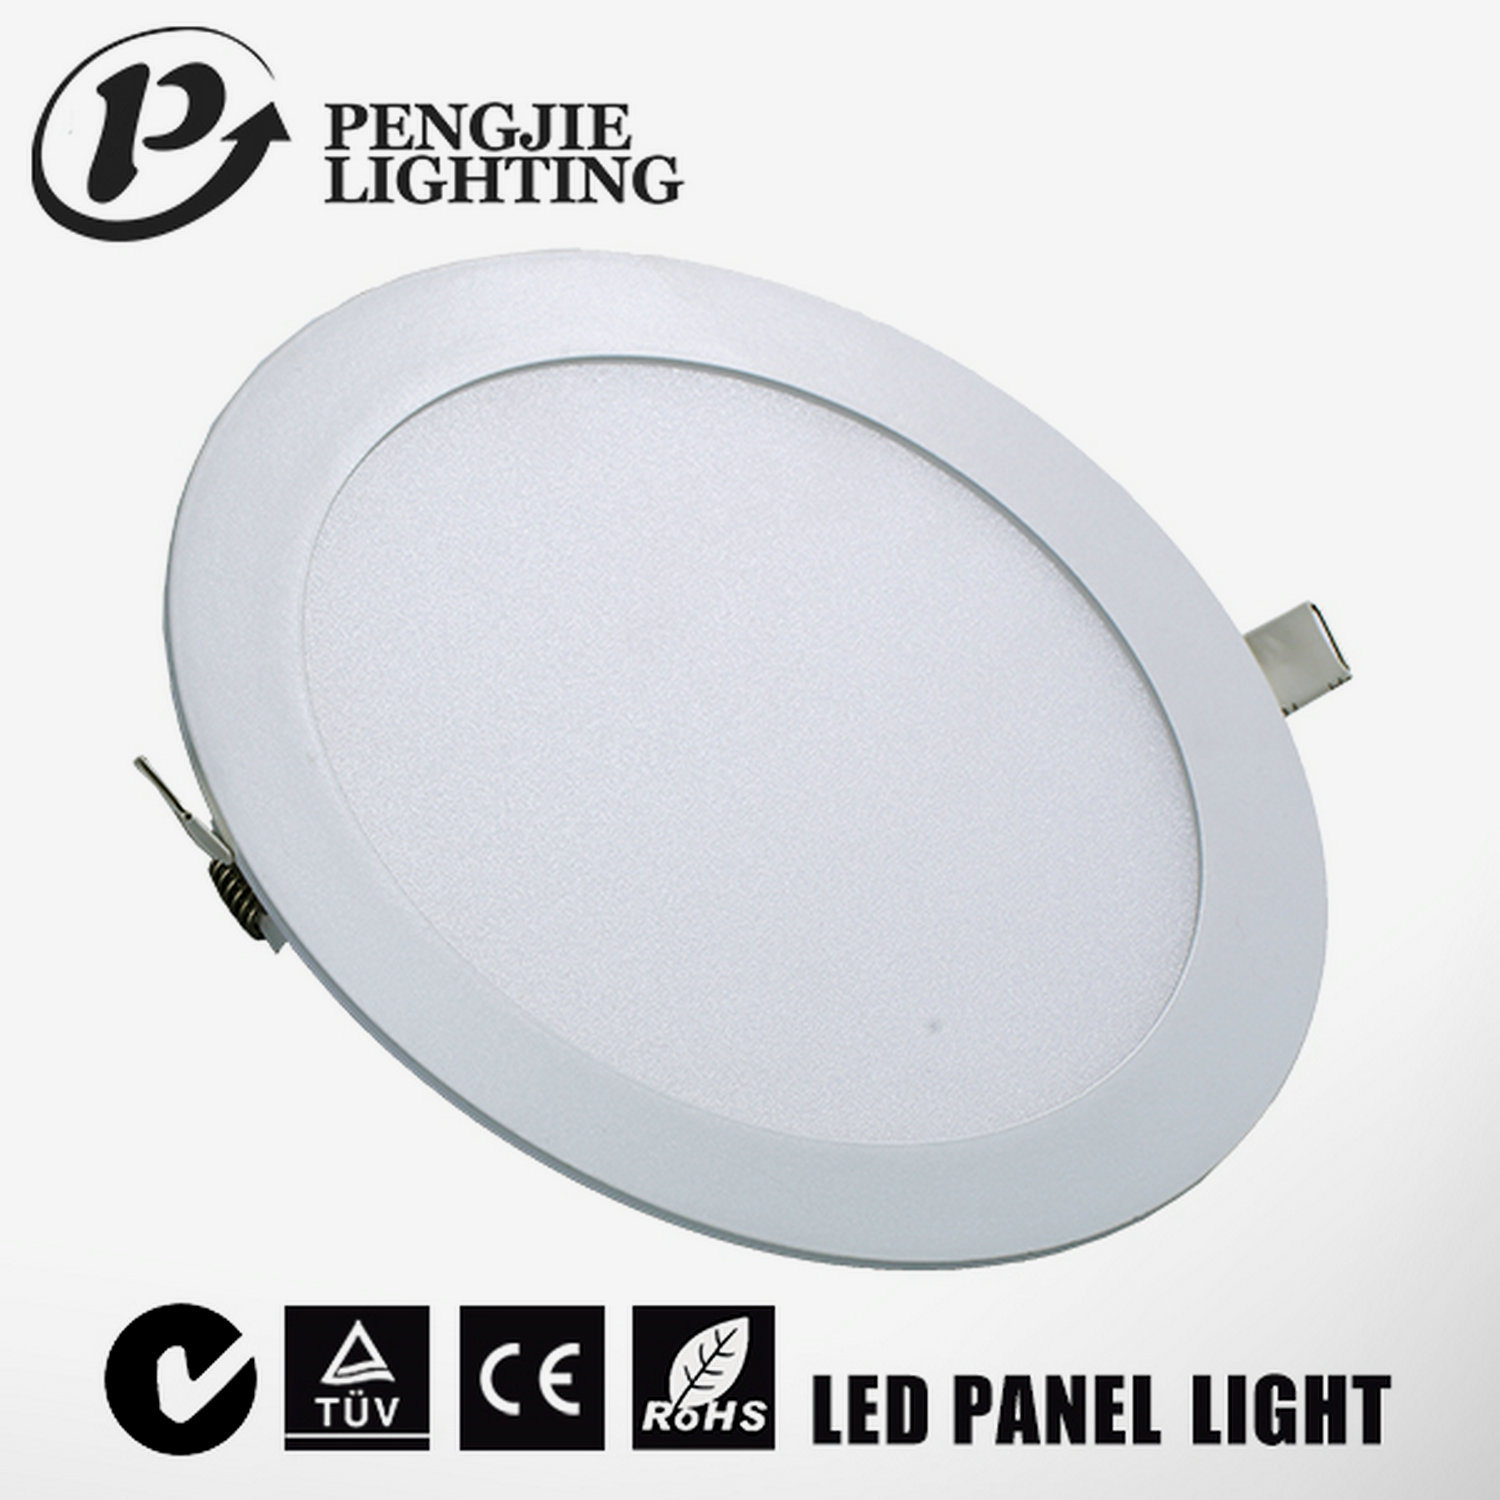 3W LED Ceiling Light Panel with CE RoHS Certification